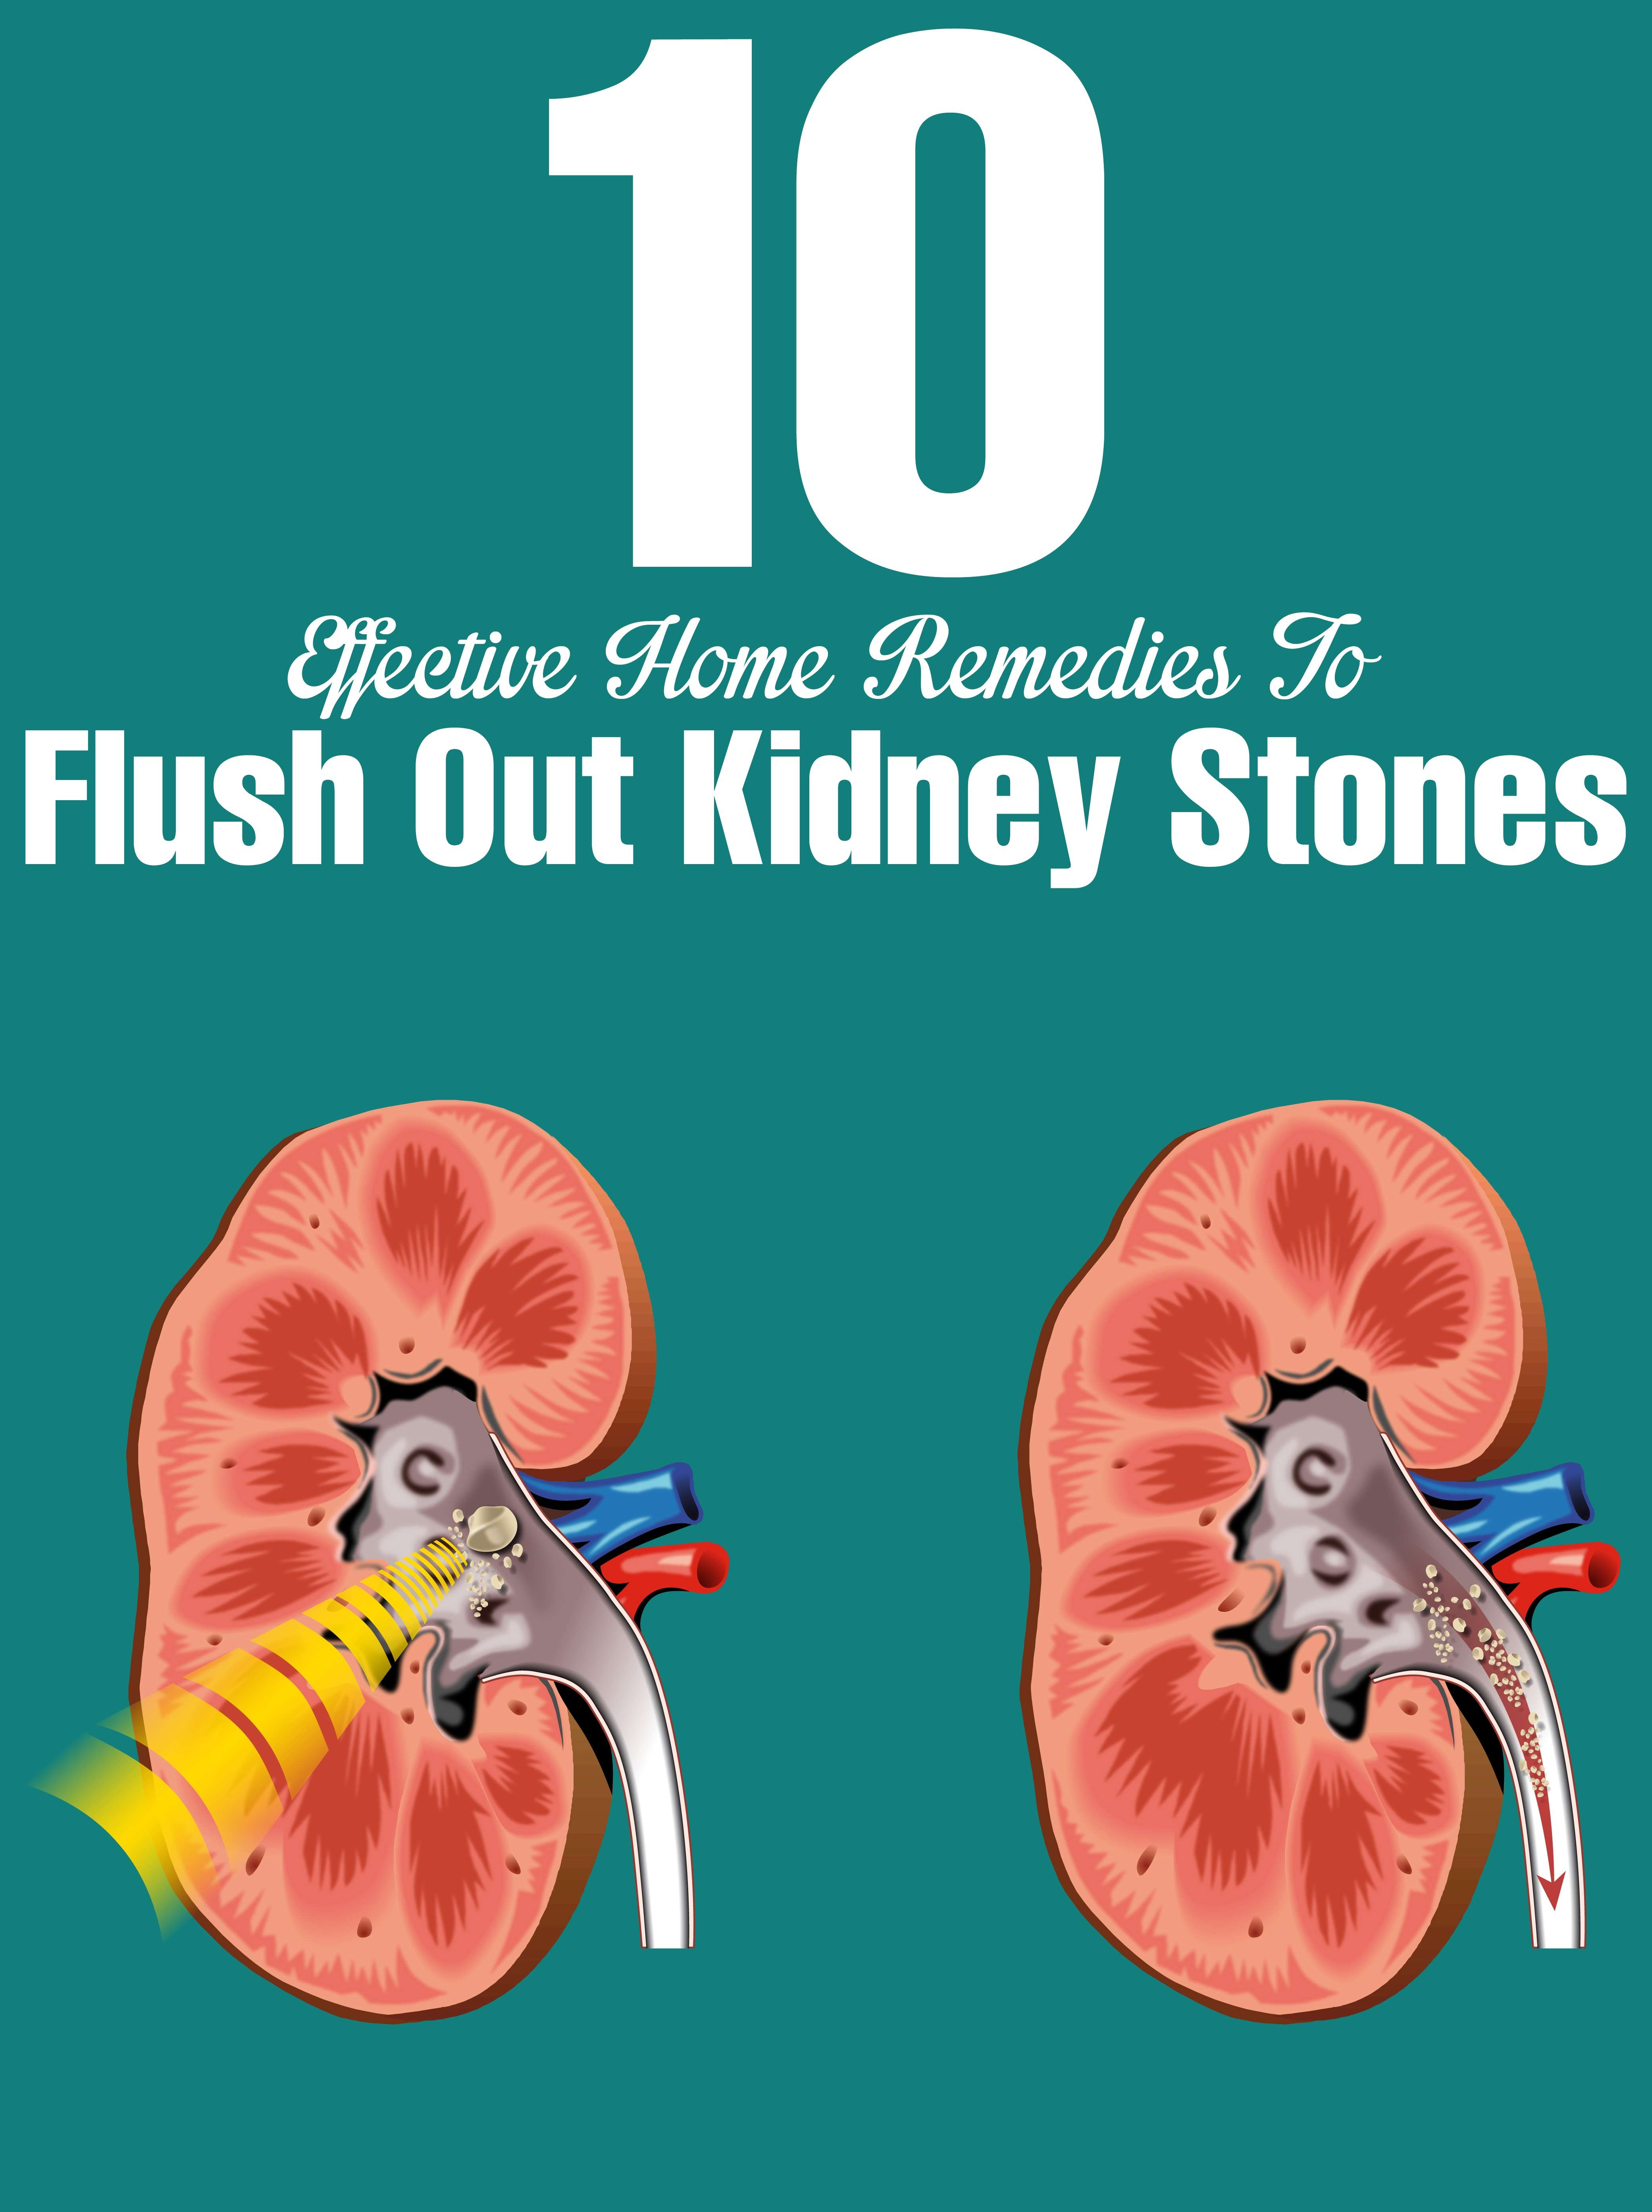 What are the kidney stones